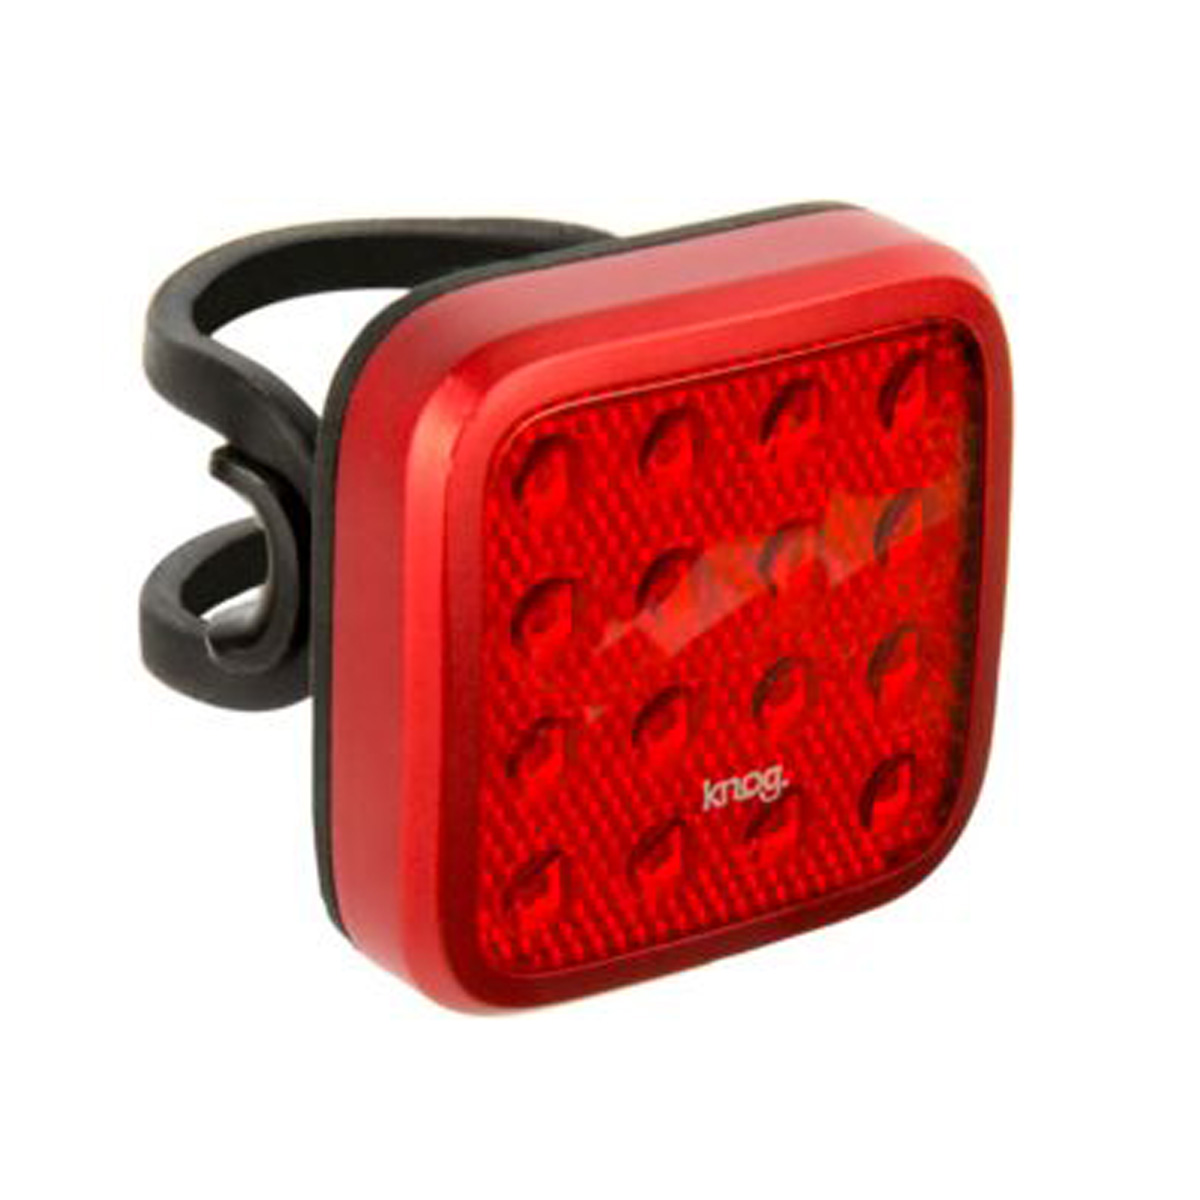 Knog Blinder Mob Kid Grid Bicycle Tail Light - w/Red Light